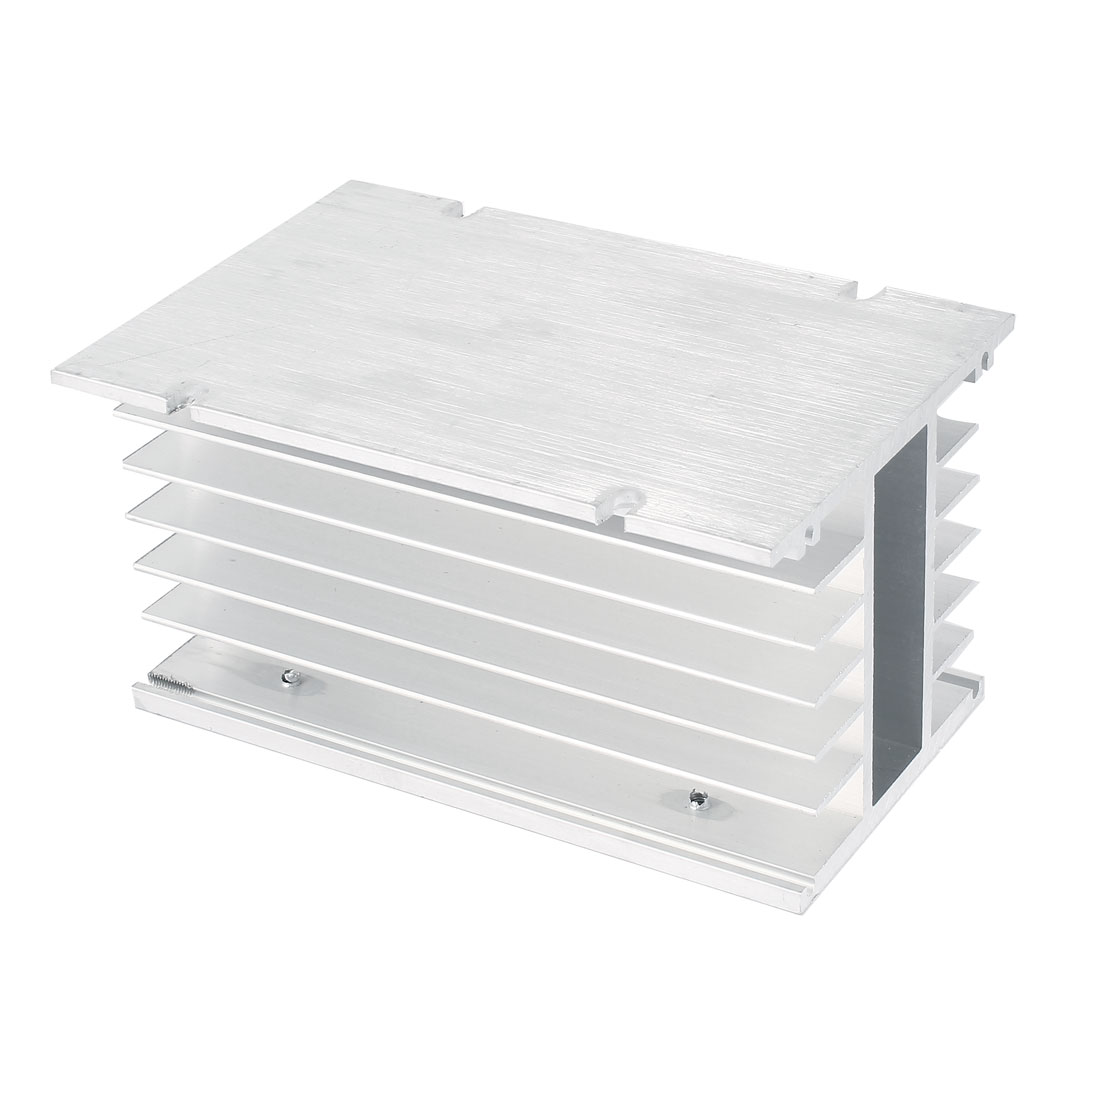 Solid State Relay Aluminium Heatsink Cooling Fin 150mmx100mmx80mm Silver Tone